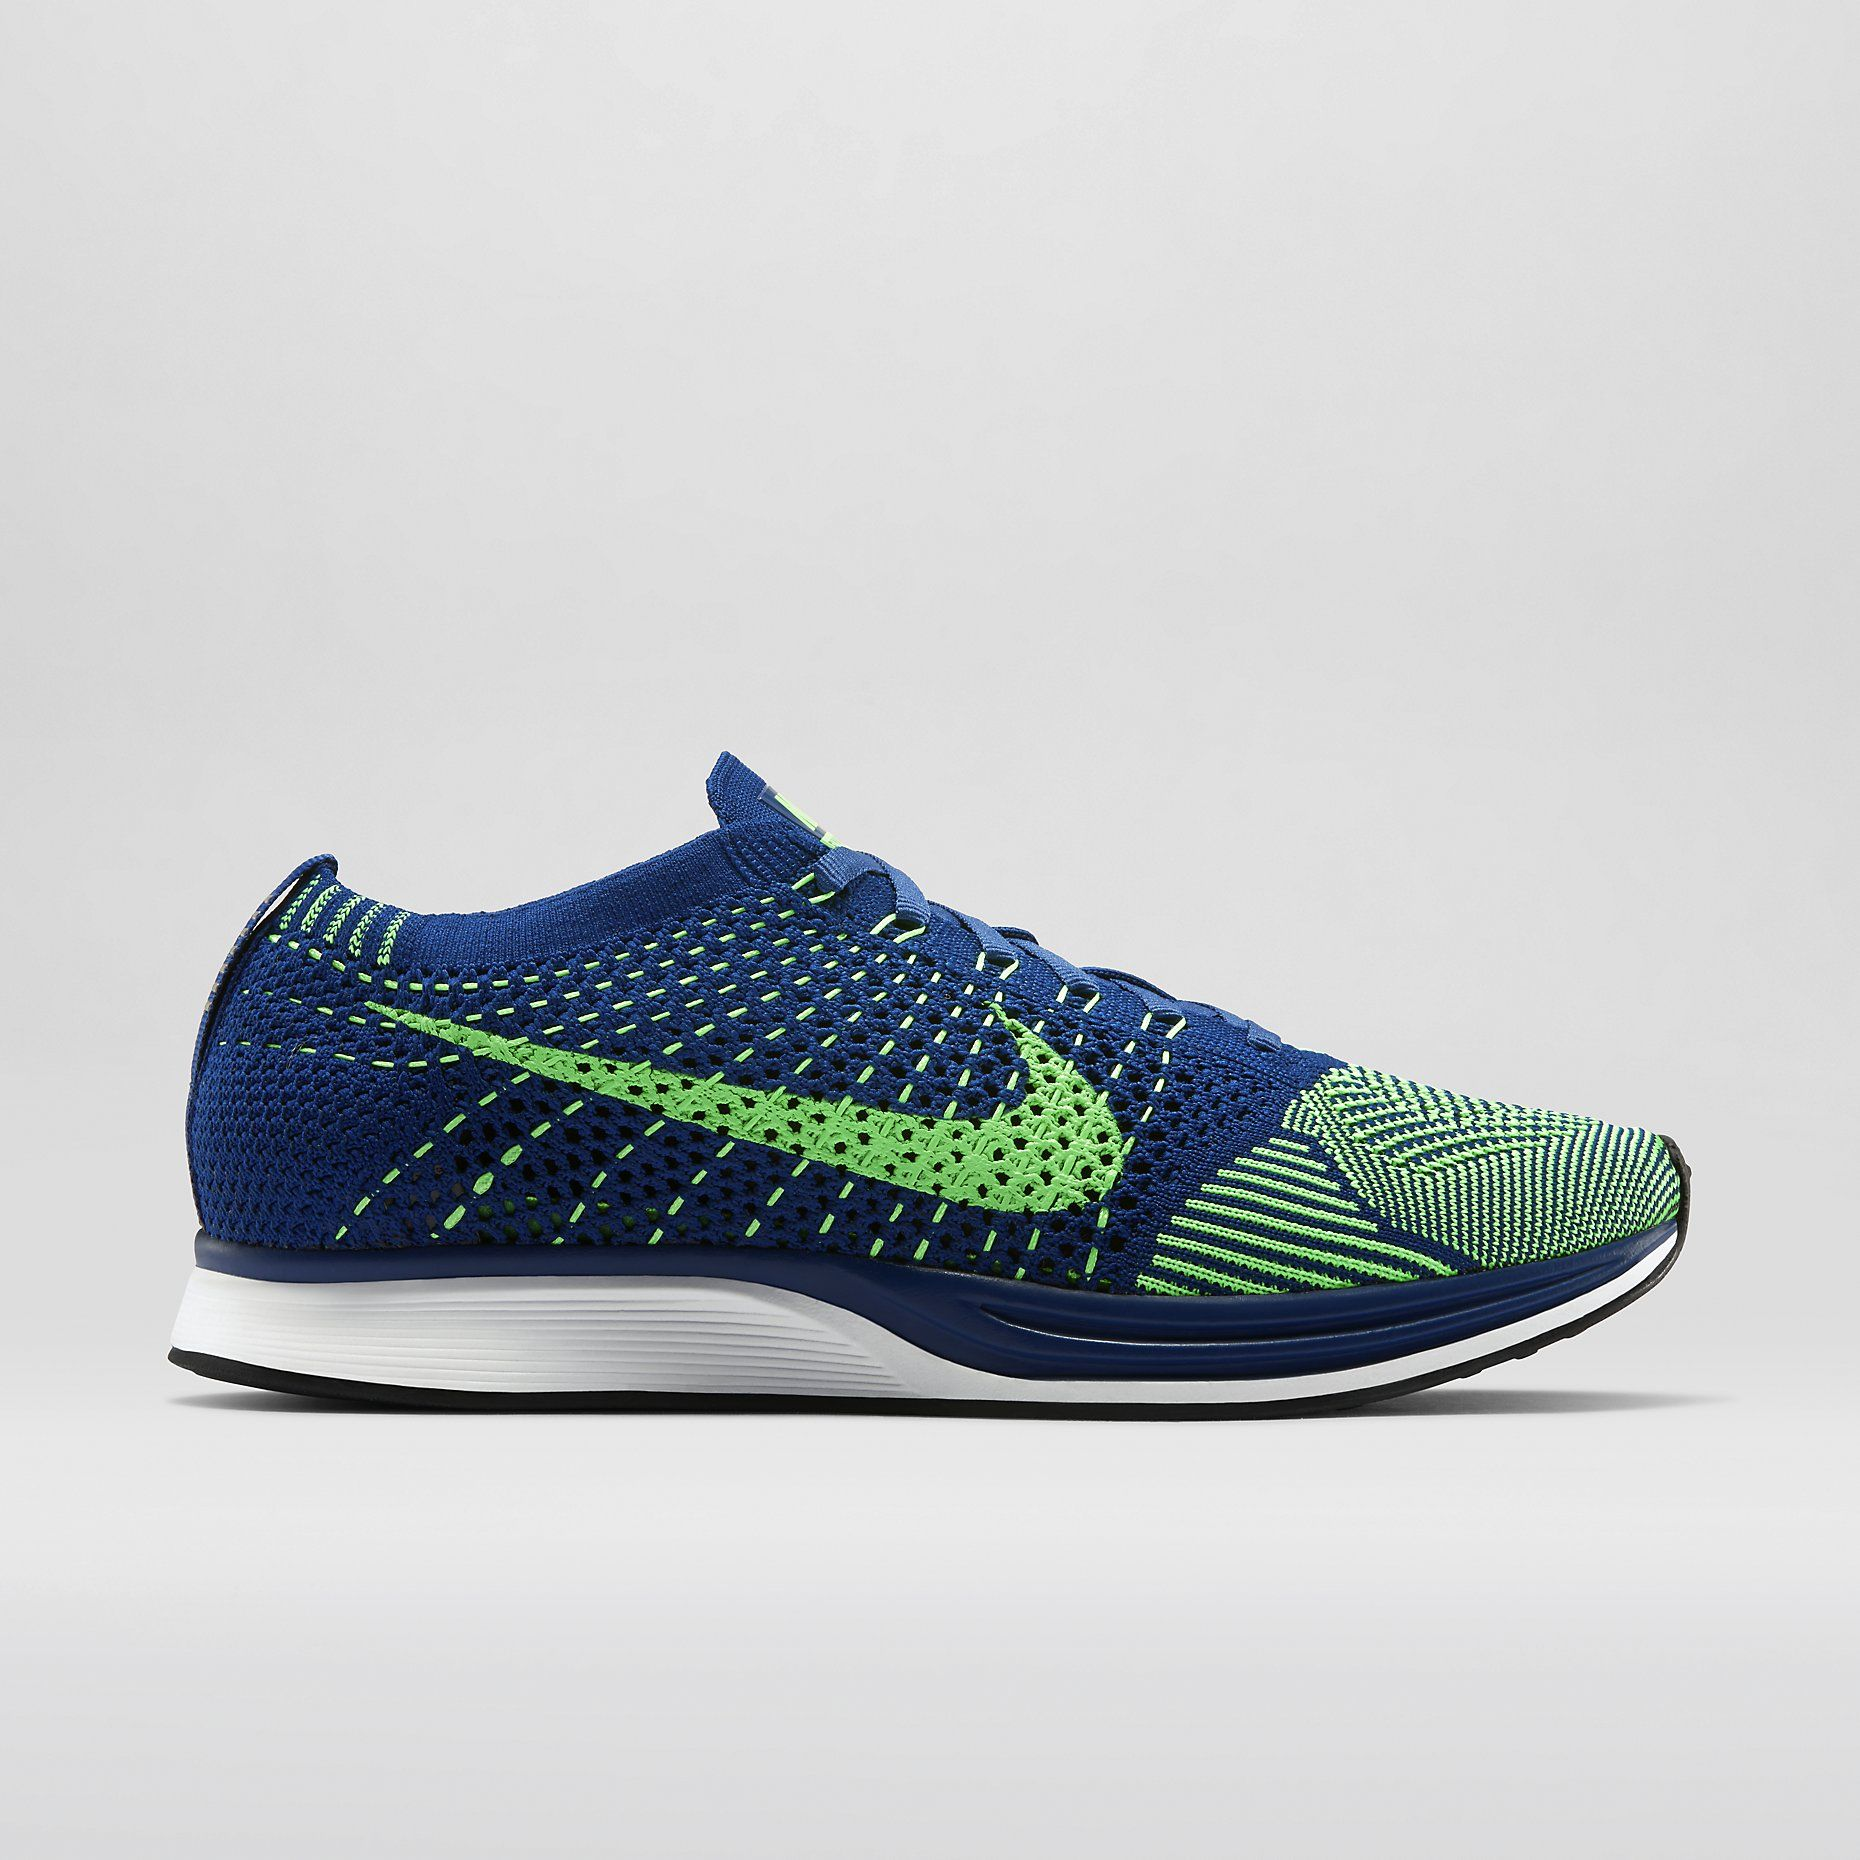 Nike Free Run Flyknit Dimensionnement Air